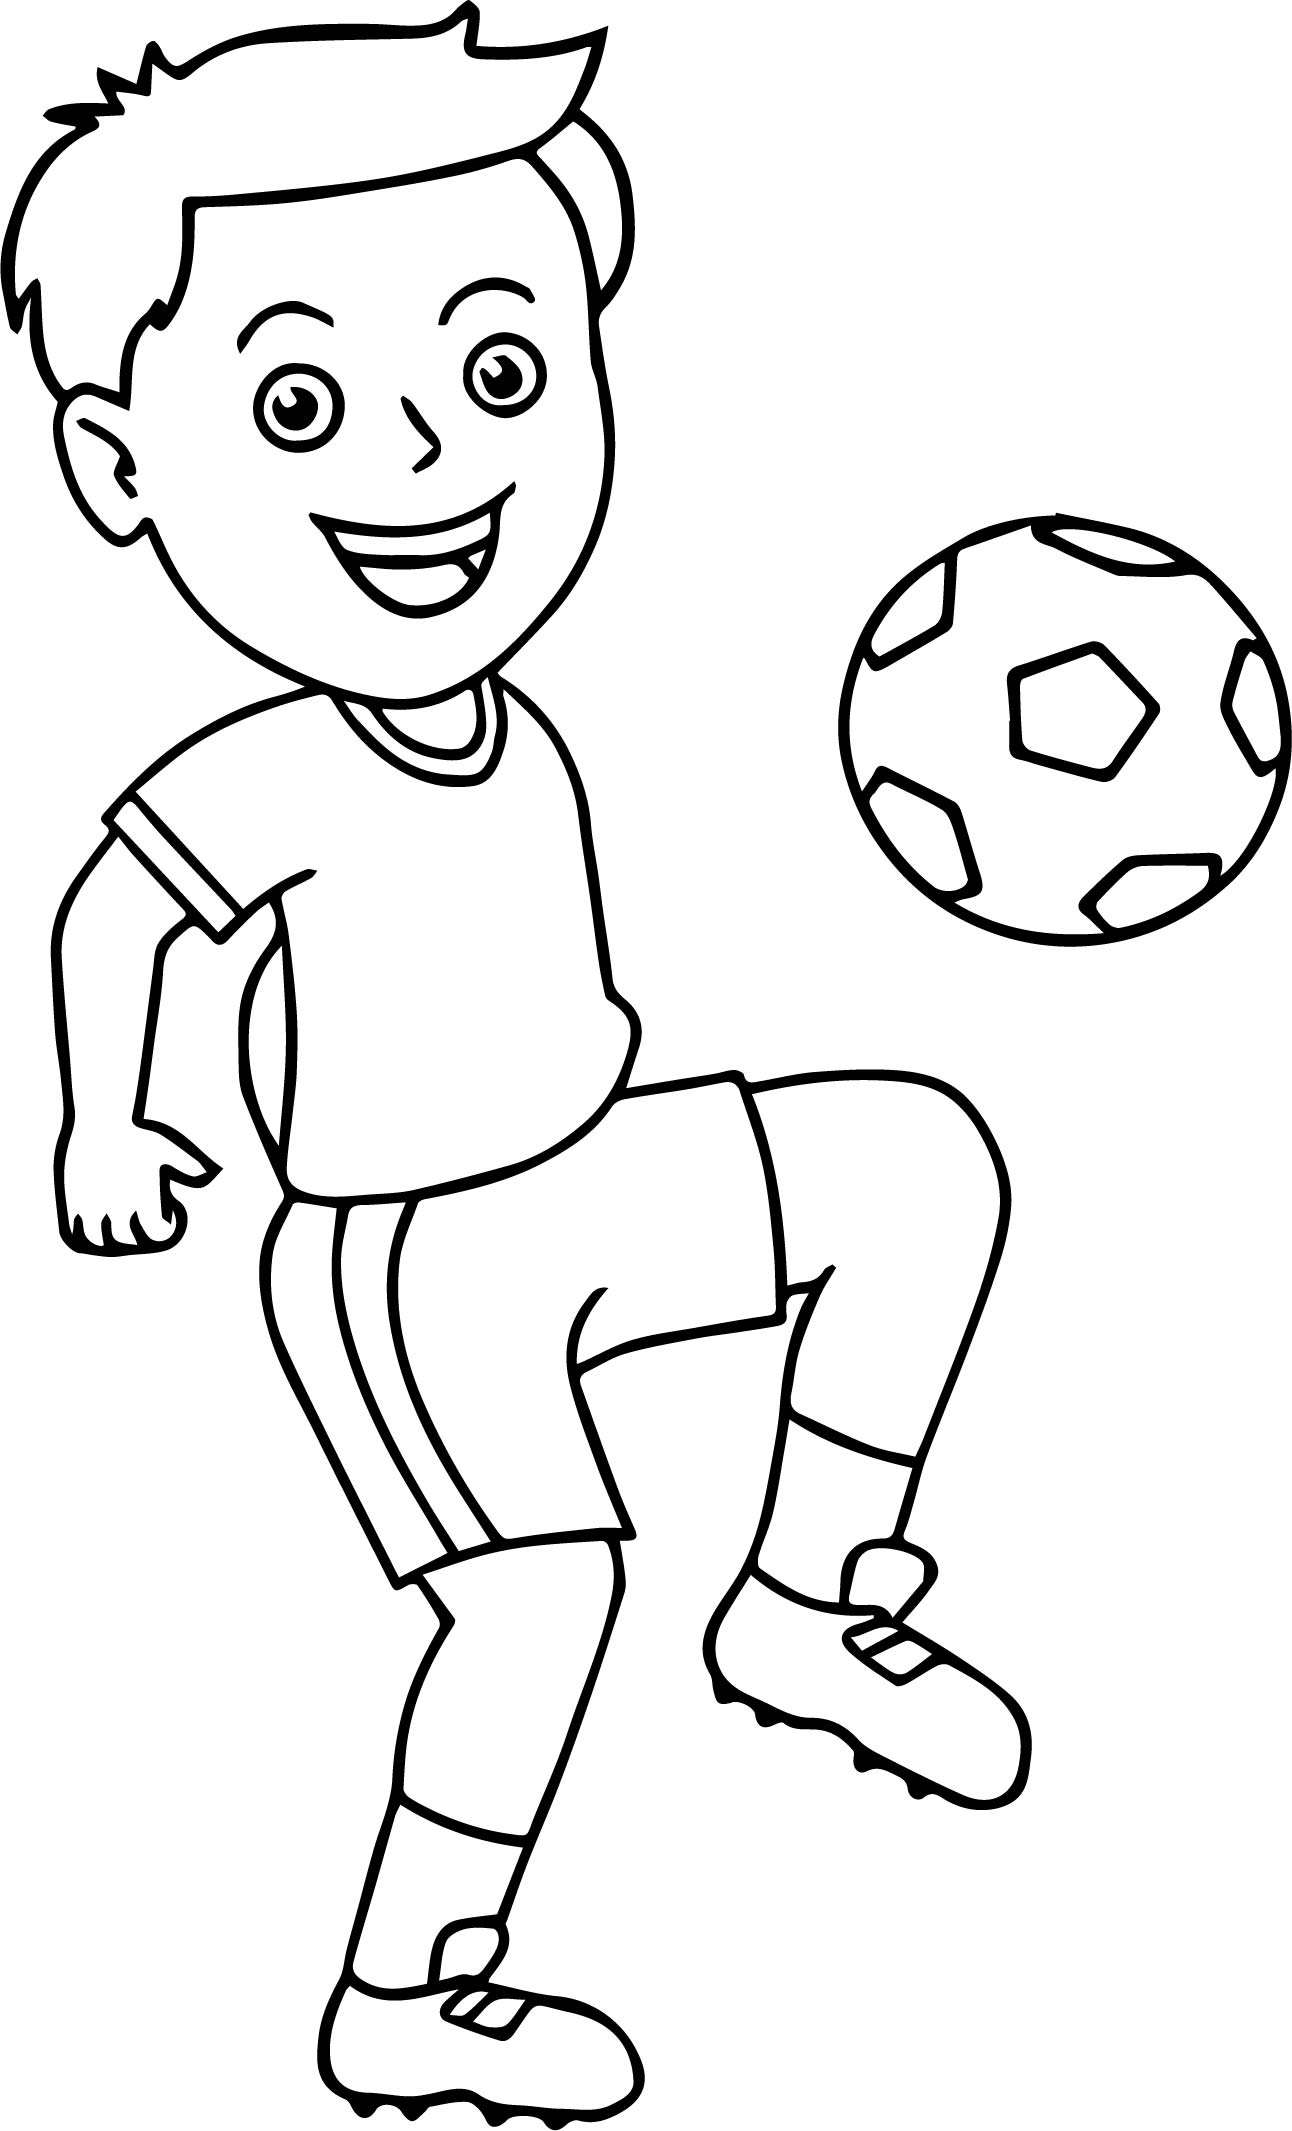 Soccer boy bouncing soccer ball on his knee playing for Soccer coloring pages for kids